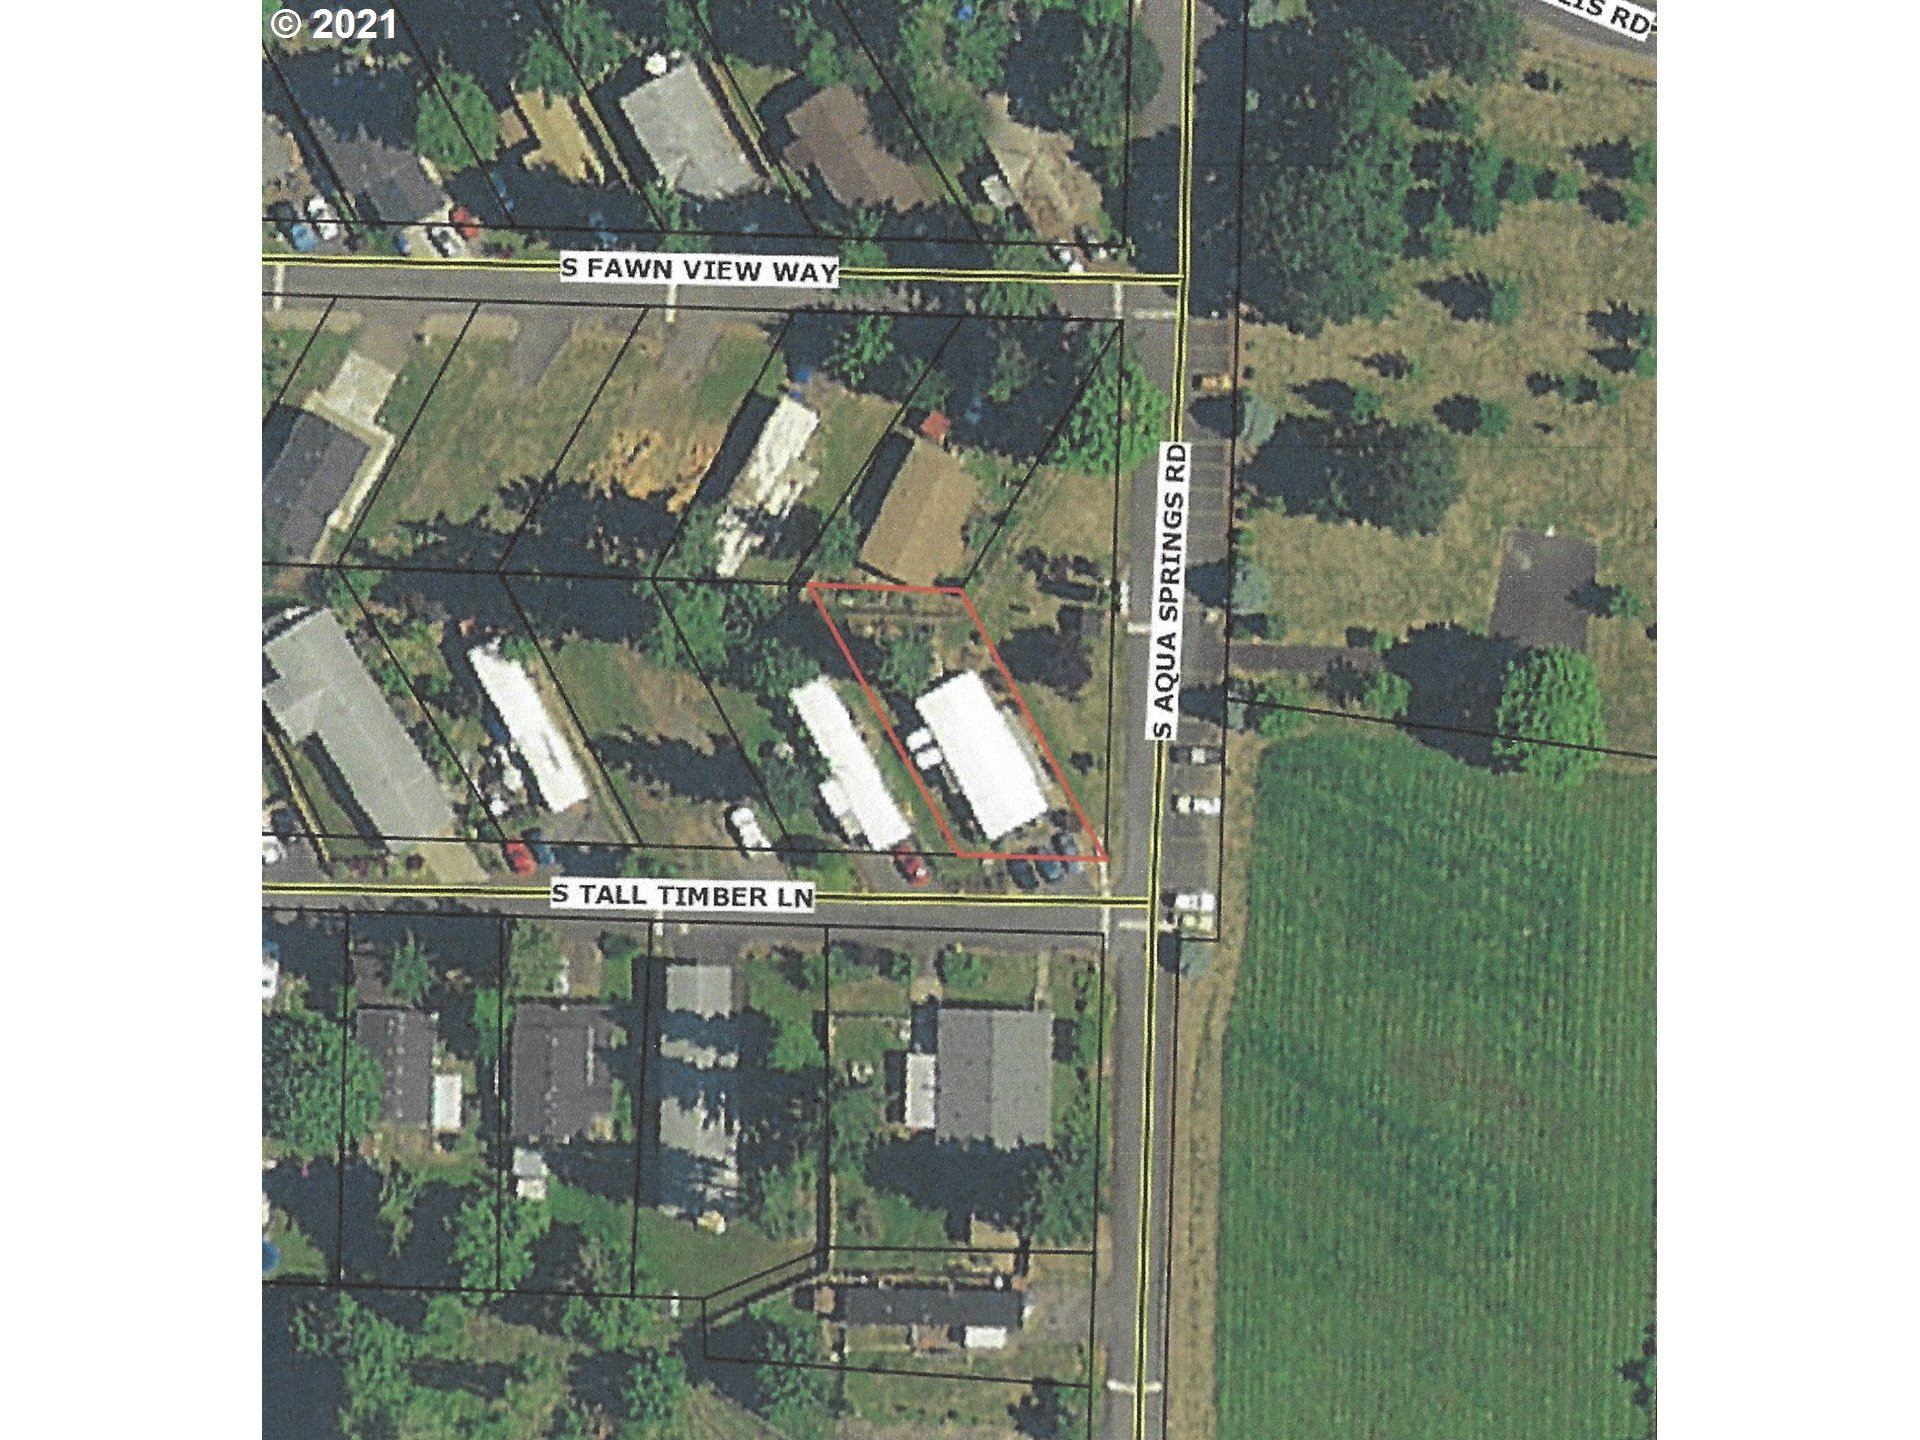 Photo of 15687 S TALL TIMBER LN, Molalla, OR 97038 (MLS # 21524827)